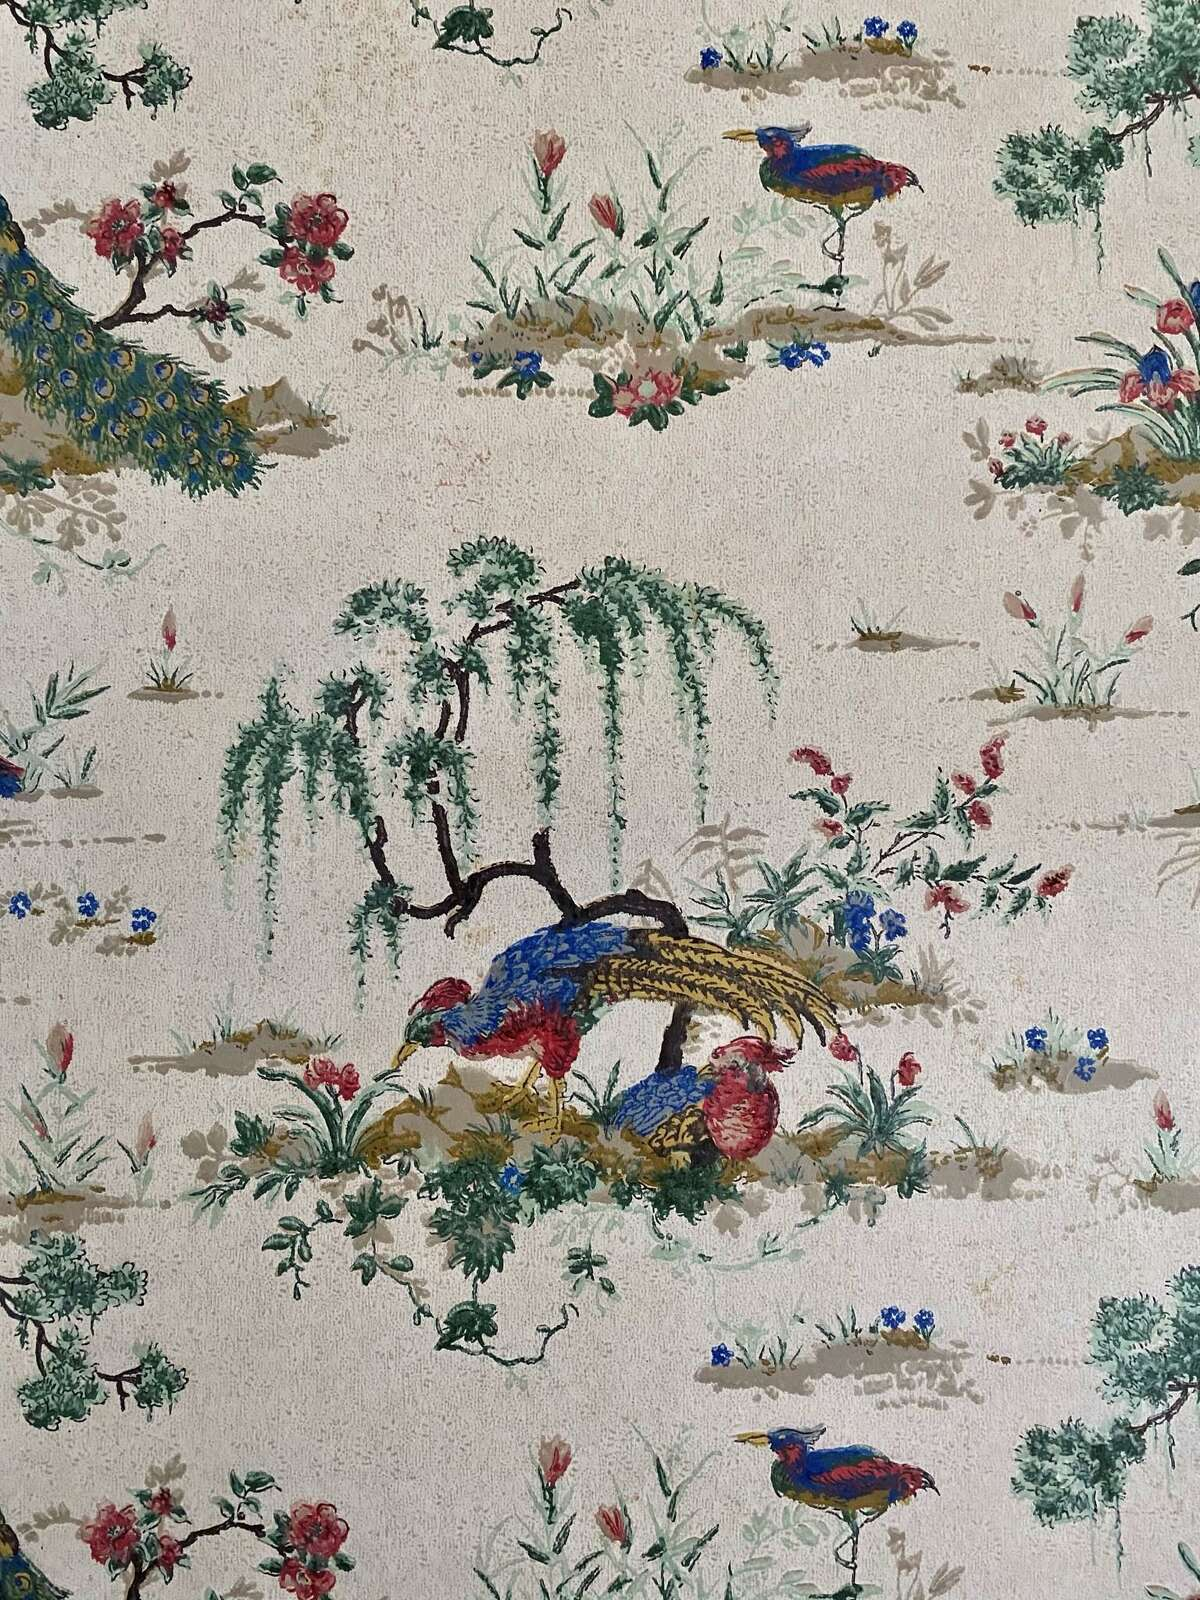 The wallpaper of the Bellamy-Ferriday House & Garden, chosen by its last resident, Caroline Ferriday, and installed between 1910-1950, is beginning to show its age. Connecticut Landmarks Collections Team has begun a three-phase Wallpaper Restoration Project to remove the existing papers and replace them with reproductions.